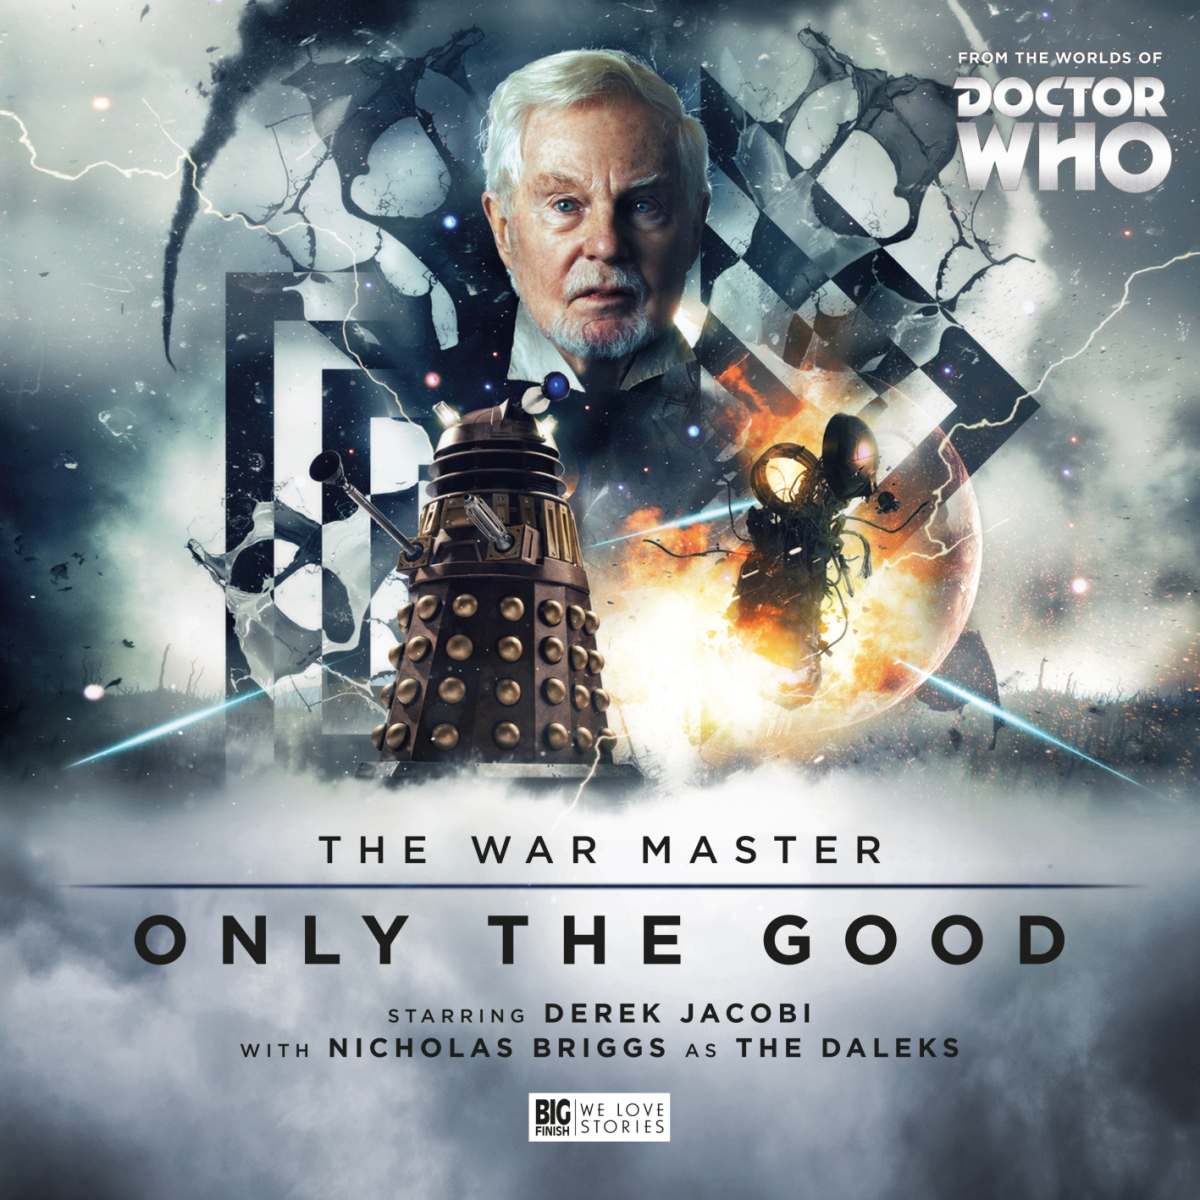 The War Master Only the Good review